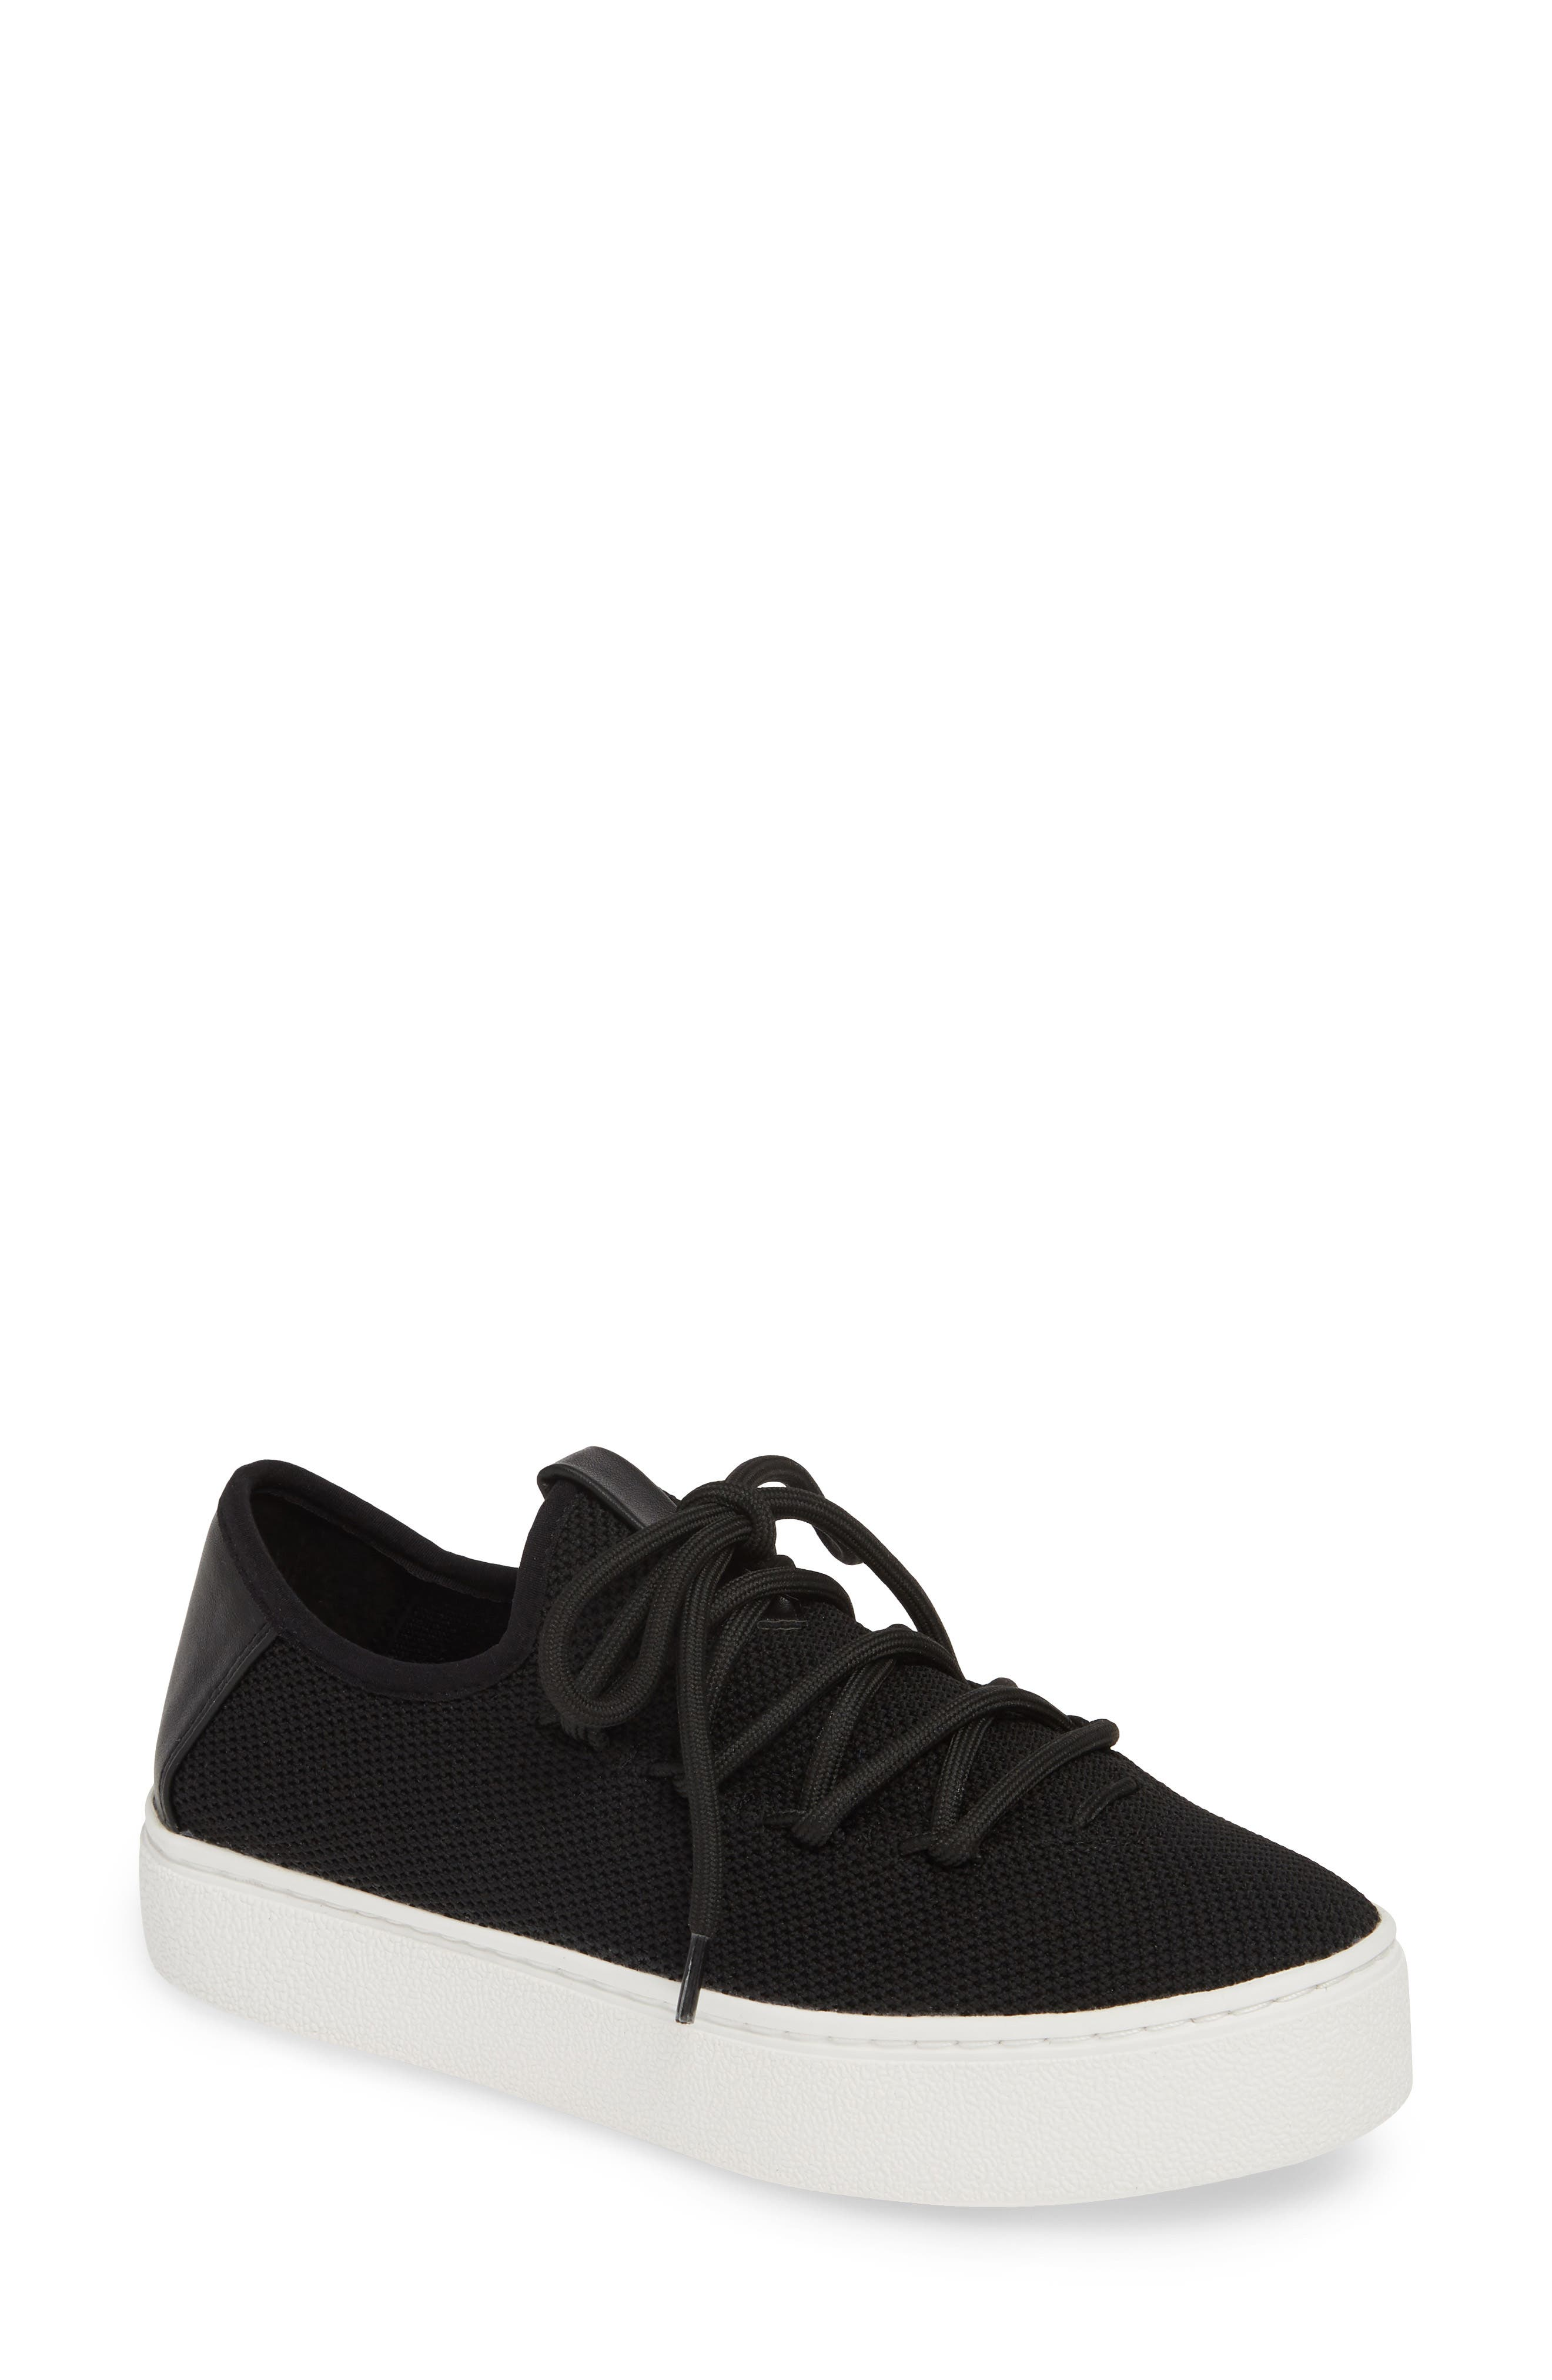 Bp Lace-Up Sneaker- Black